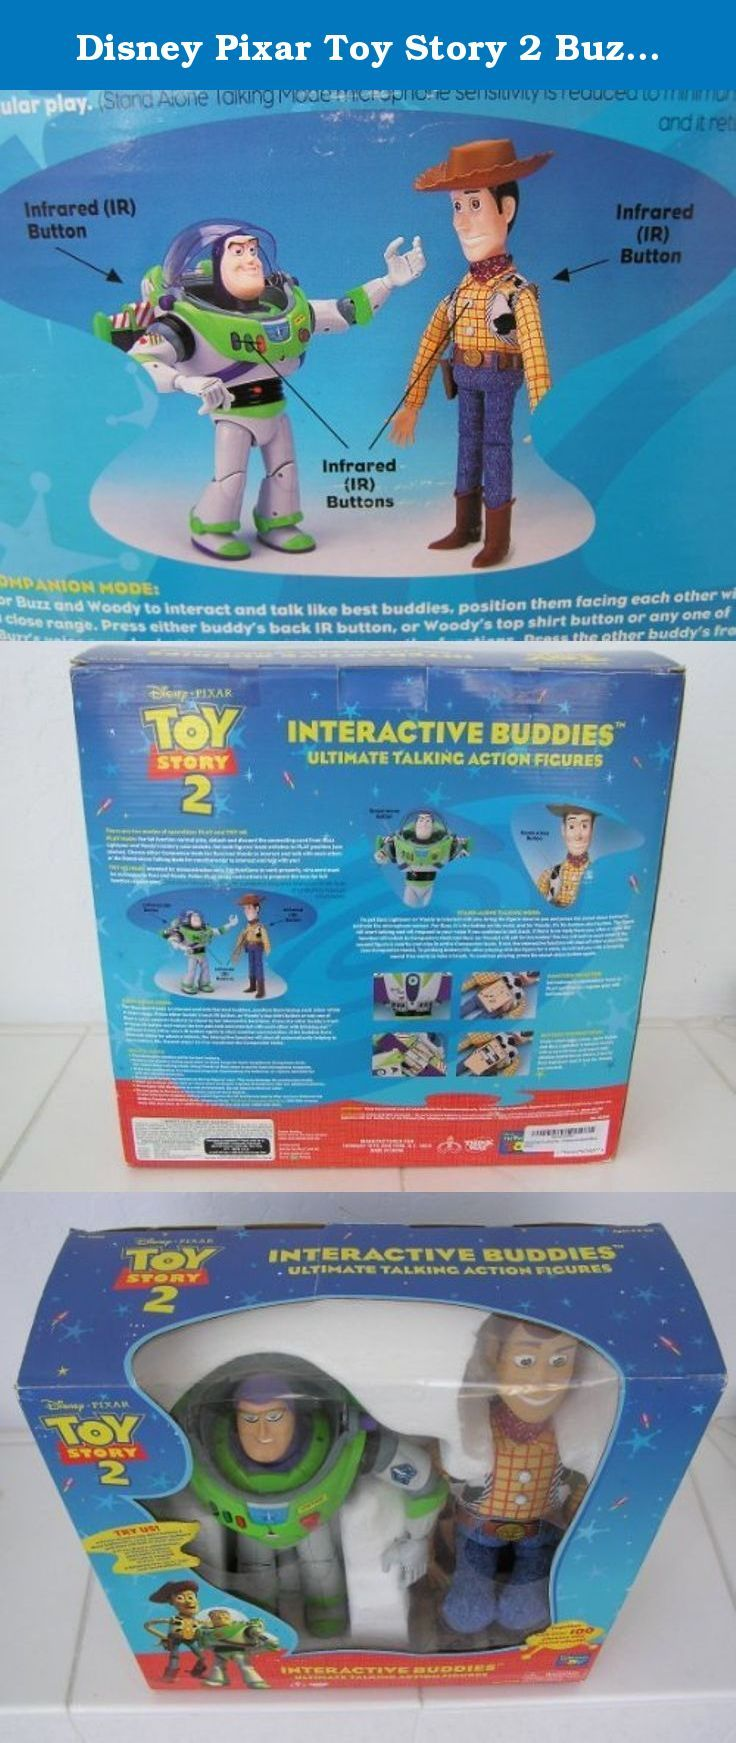 Disney Pixar Toy Story 2 Buzz And Woody Interactive Figures. Ultimate Talking Action Figures. Together With Over 100 Phrases And Sound Effects. by Thinkway Toys. Companion Mode allows them to talk to each other. Stand Alone Mode allows them respond to you when you talk to them.